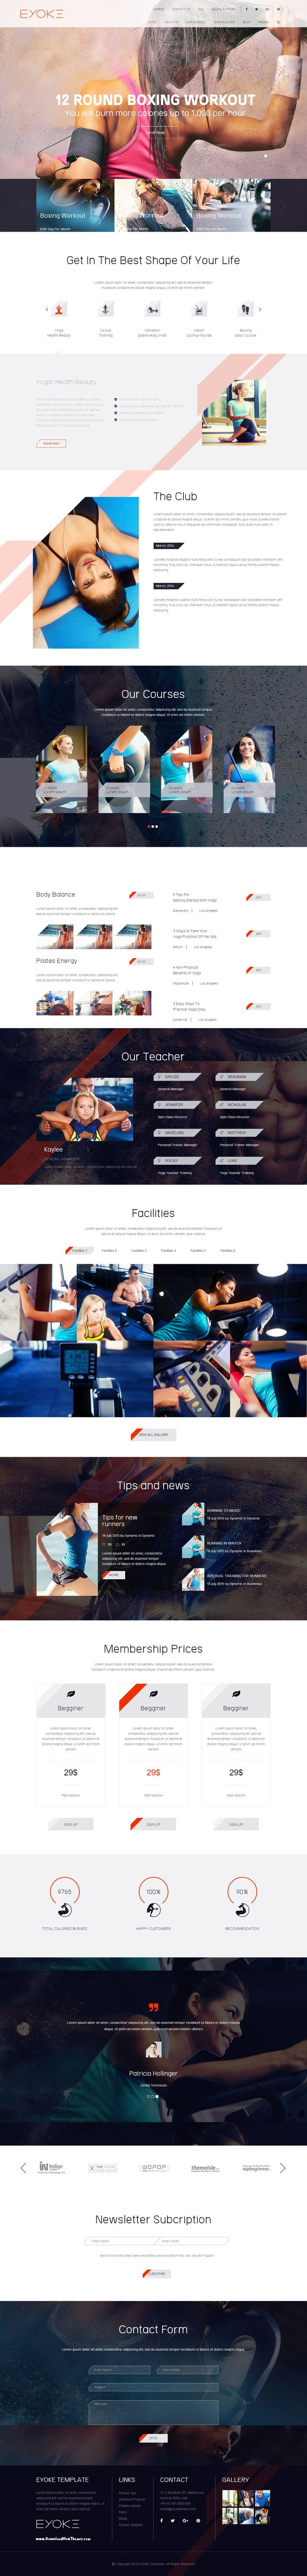 Eyoke is a nice and creative template for Gym or Fitness website. #HTMLtheme #responsivedesign